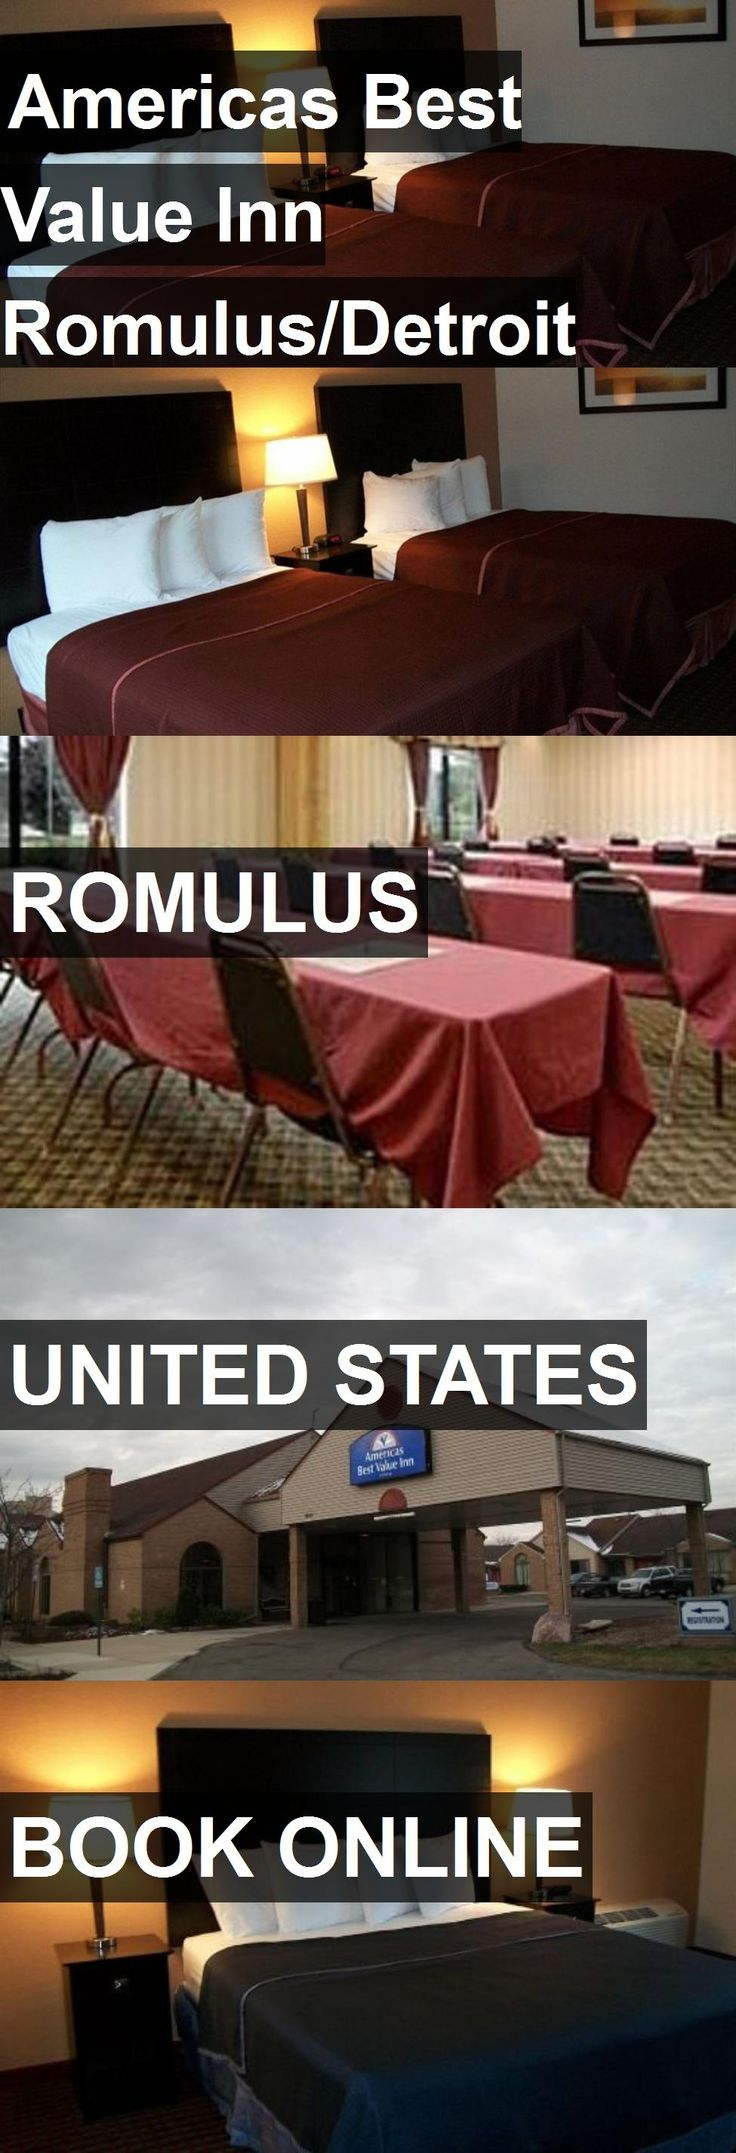 Hotel Americas Best Value Inn Romulus/Detroit Airport in Romulus, United States. For more information, photos, reviews and best prices please follow the link. #UnitedStates #Romulus #travel #vacation #hotel